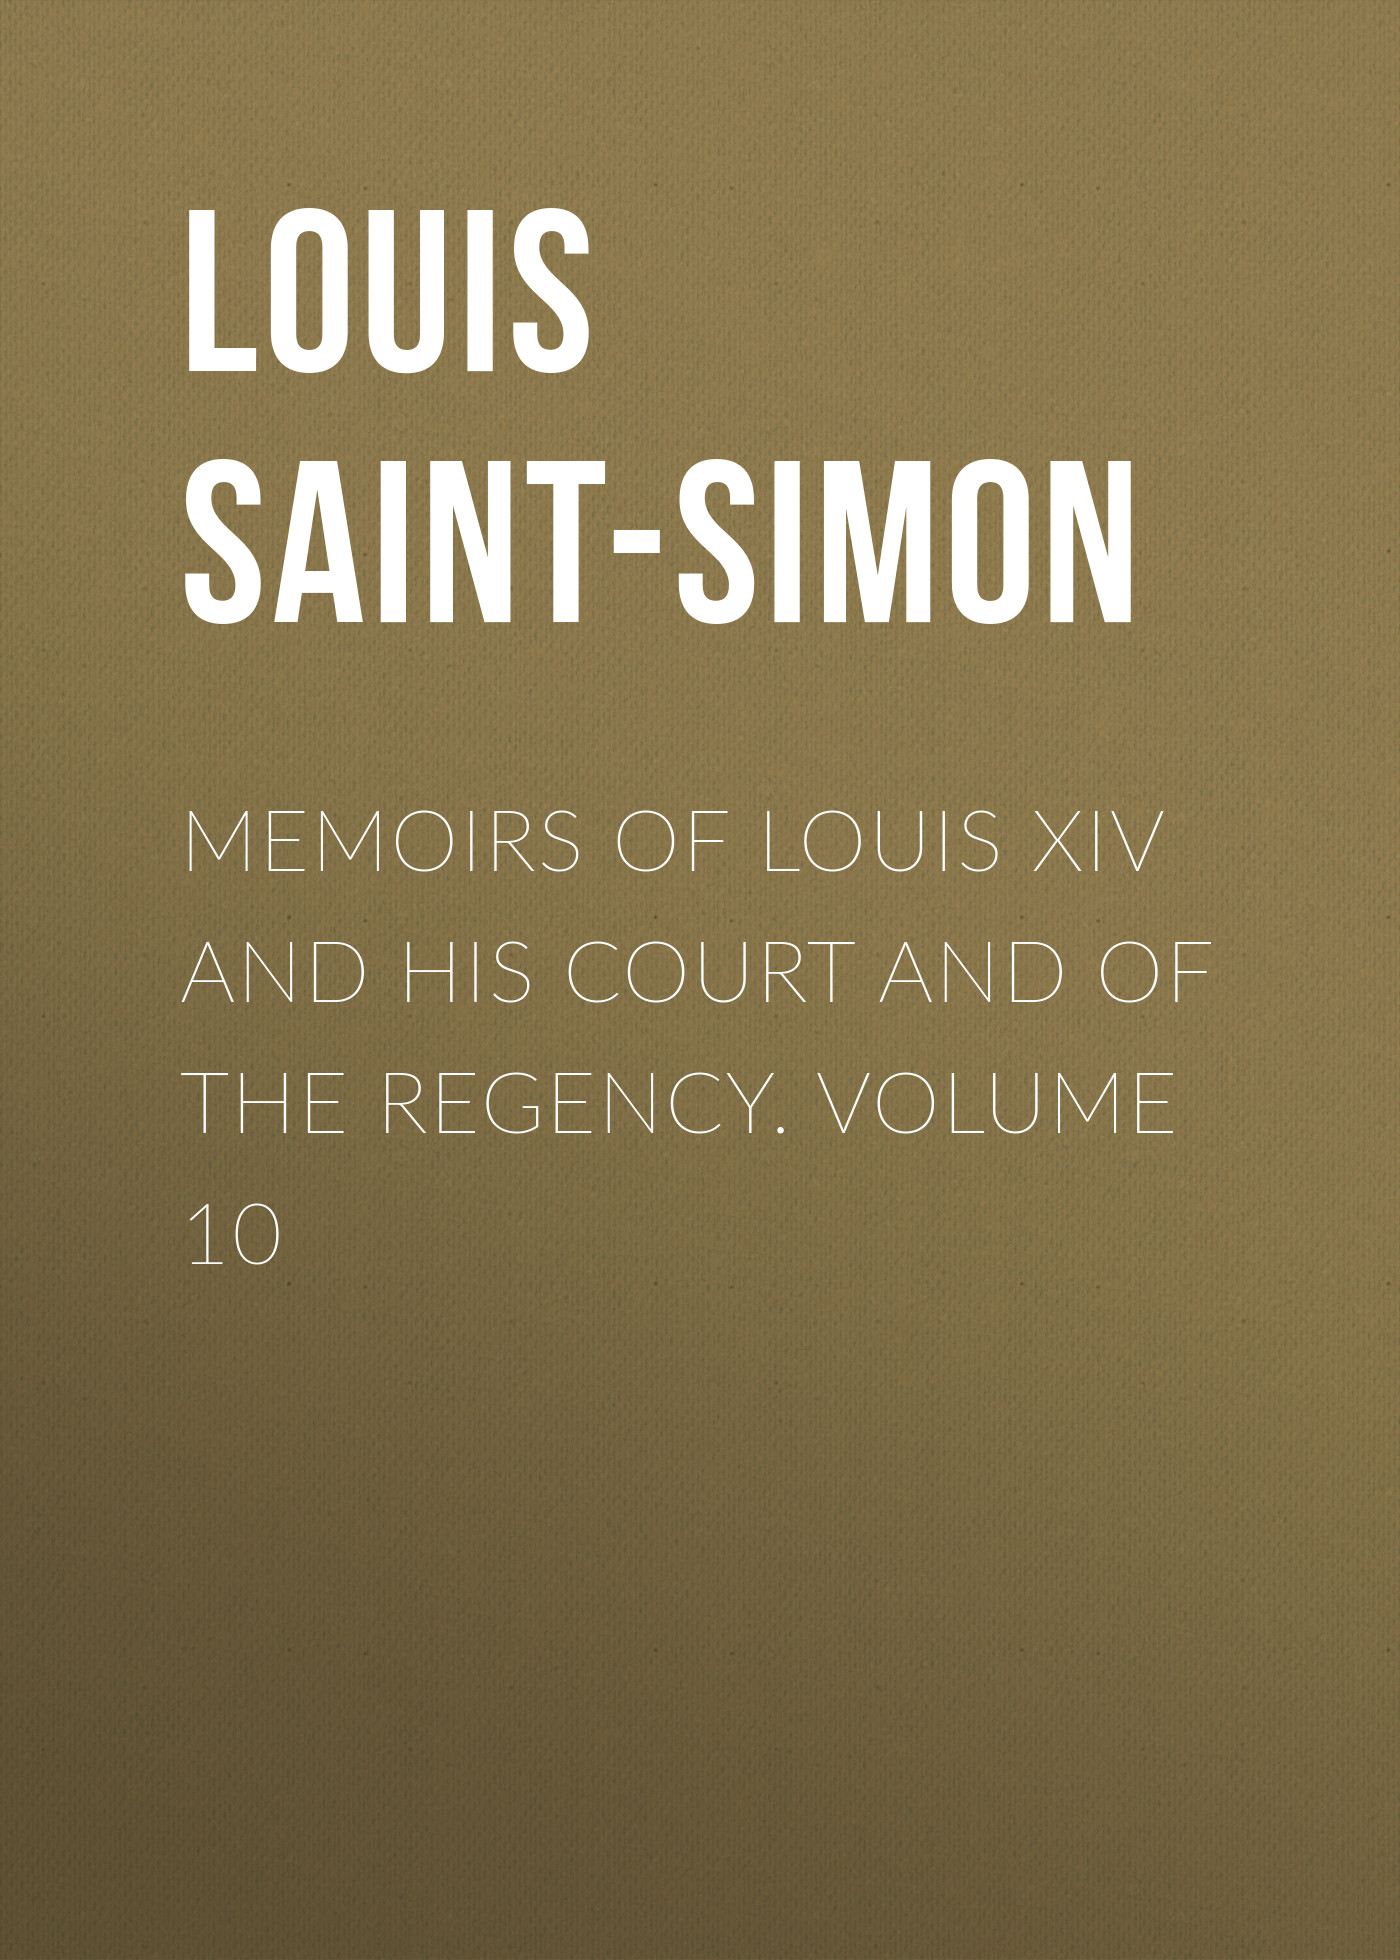 Фото - Louis Saint-Simon Memoirs of Louis XIV and His Court and of the Regency. Volume 10 jules marcou life letters and works of louis agassiz volume i